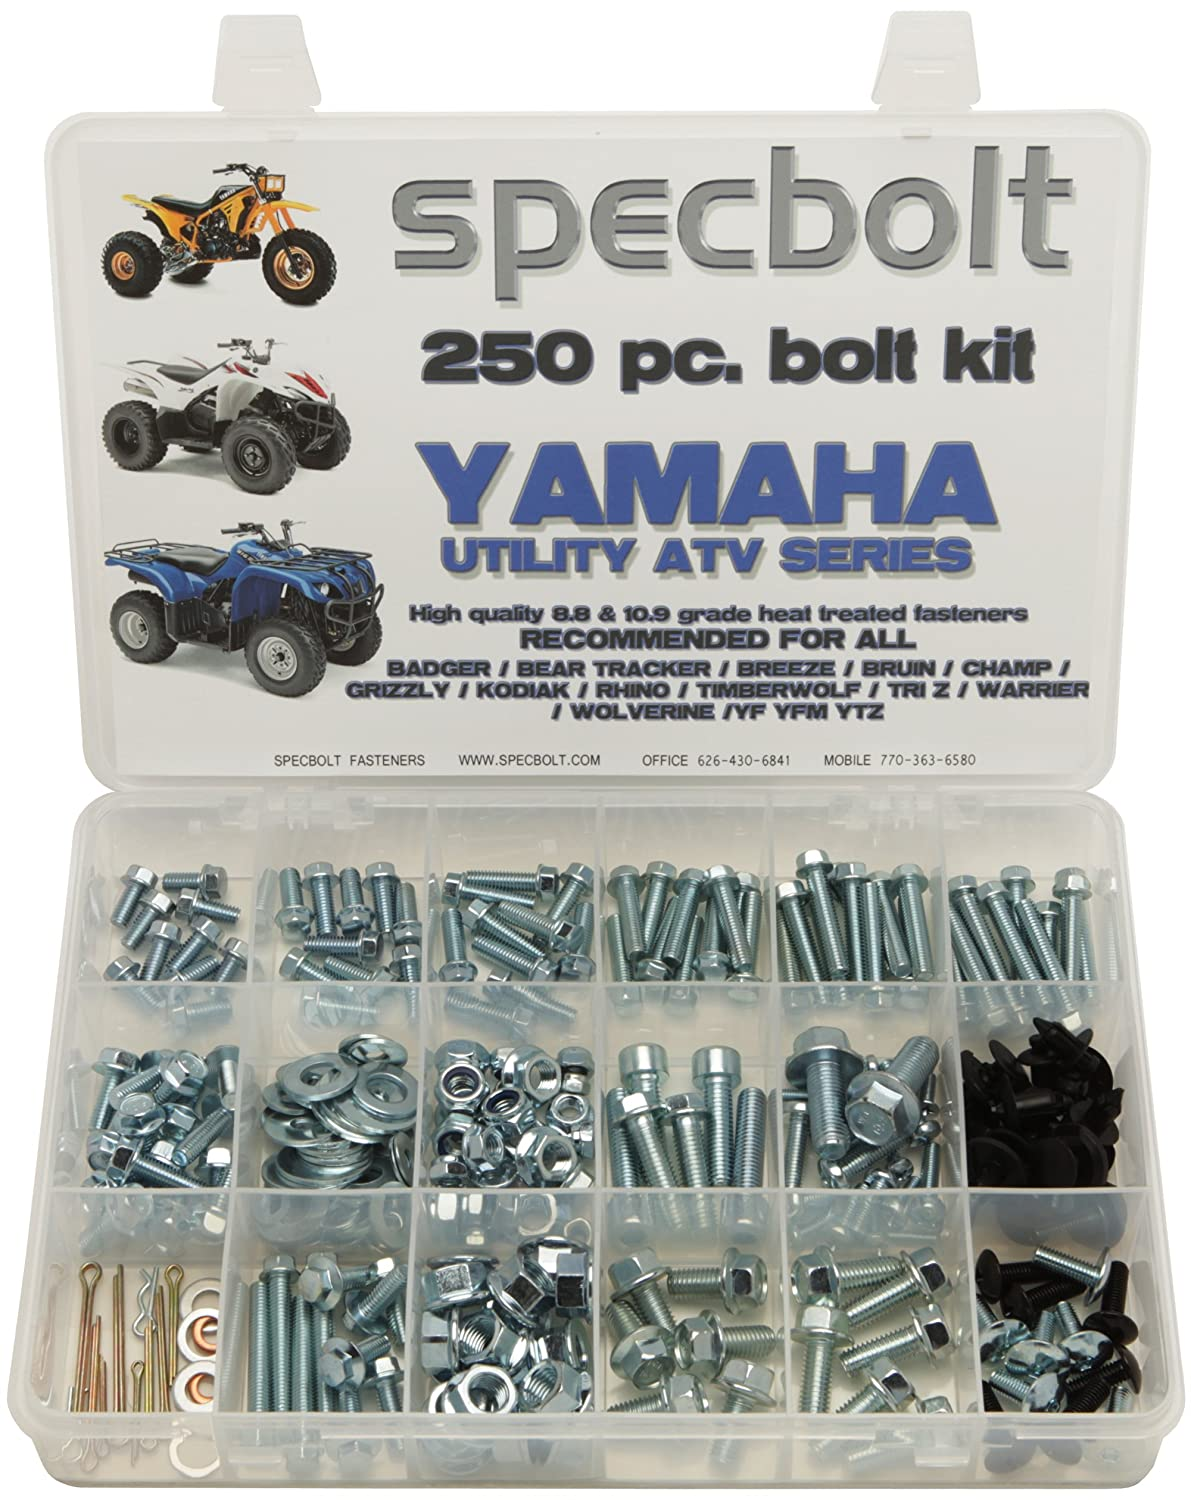 250pc Specbolt Bolt Kit For Yamaha Utility Atv Including All Grizzly Rhino 660 Fuel Filter Warrior Wolverine Big Bear Tracker Breeze Timberwolf Yfm Ytz Maintenance